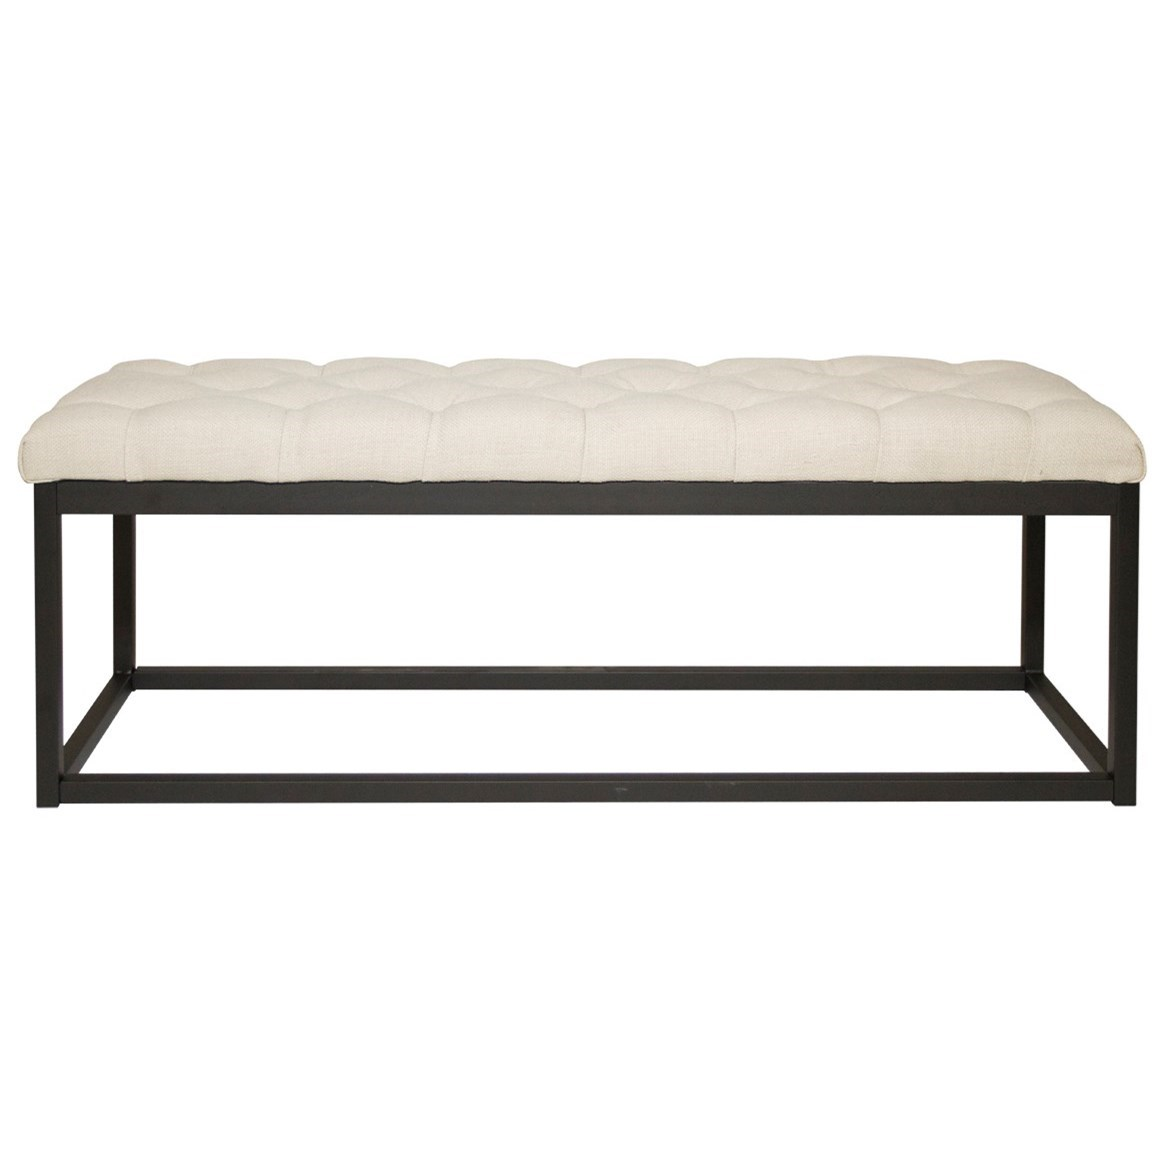 Diamond Sofa Mateo Mateobessd Black Powder Coat Metal Small Linen Tufted Bench Del Sol